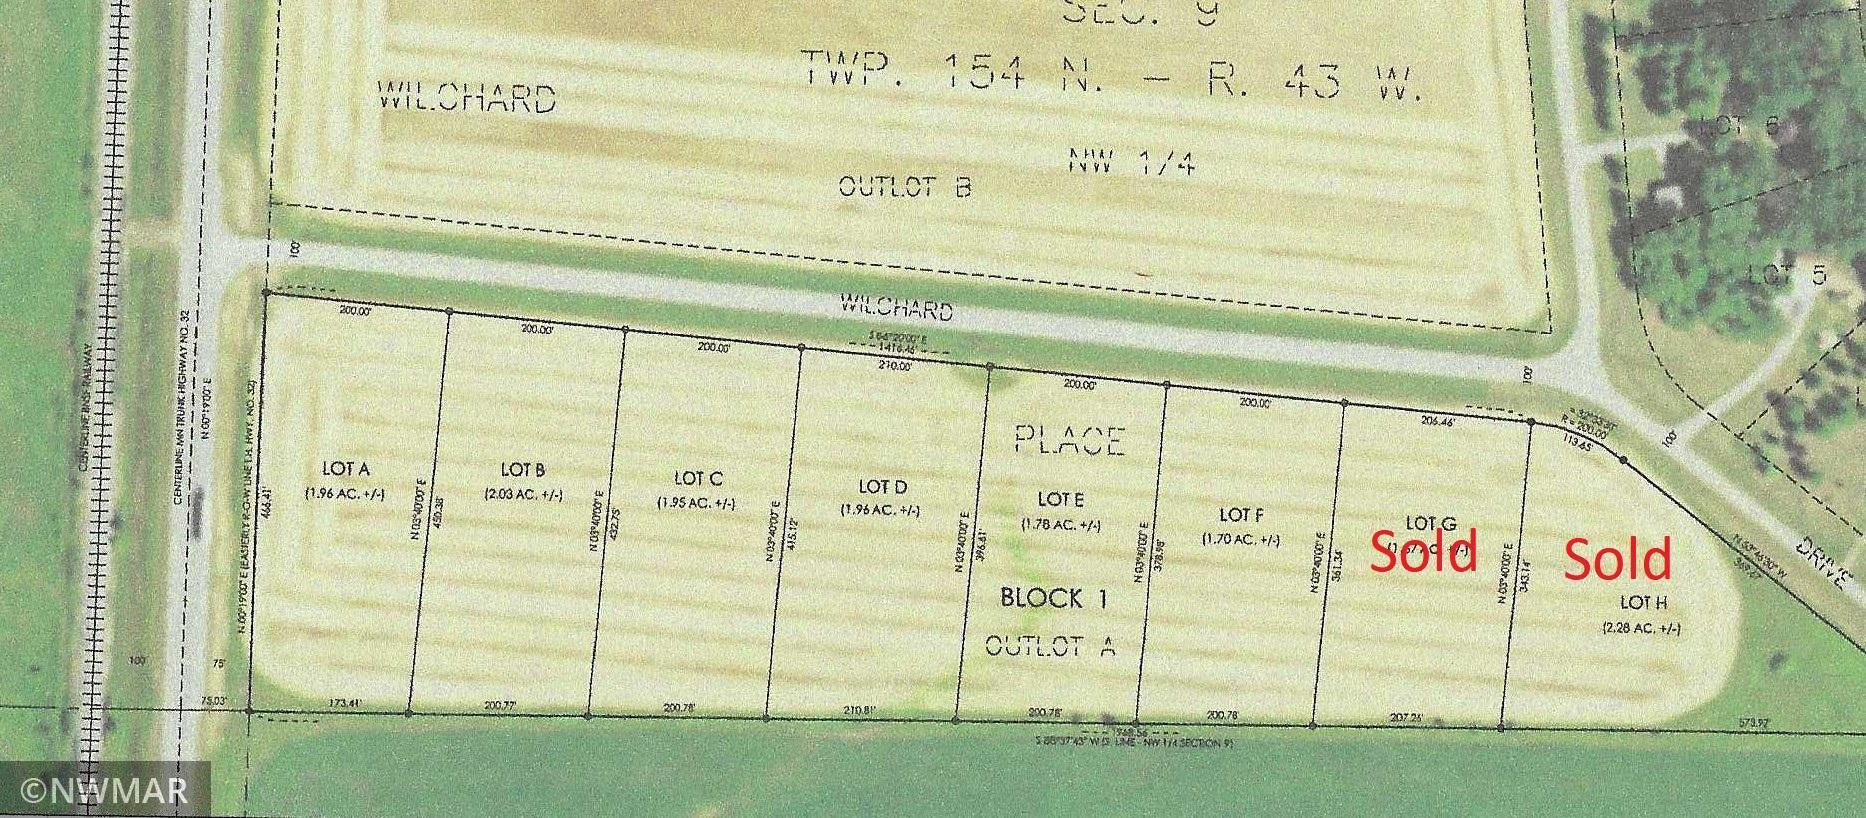 Replat of outlot A, Willchard Place Subdivision